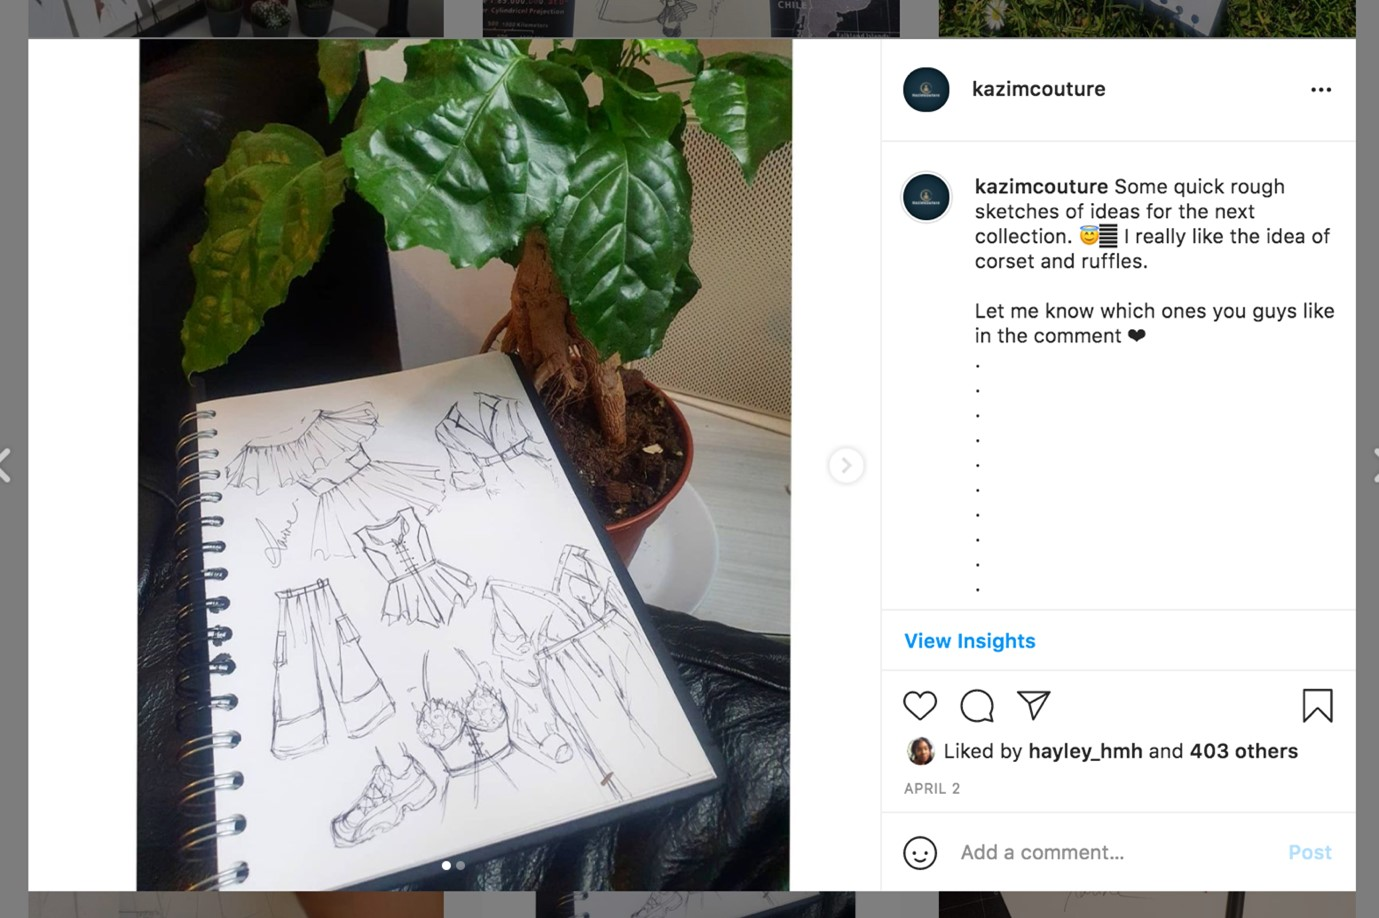 This image is of Ravina's designs. Ravnia has some blank sketches of different garnments on a sketchbook. This image is taken from Ravina's Instagram.